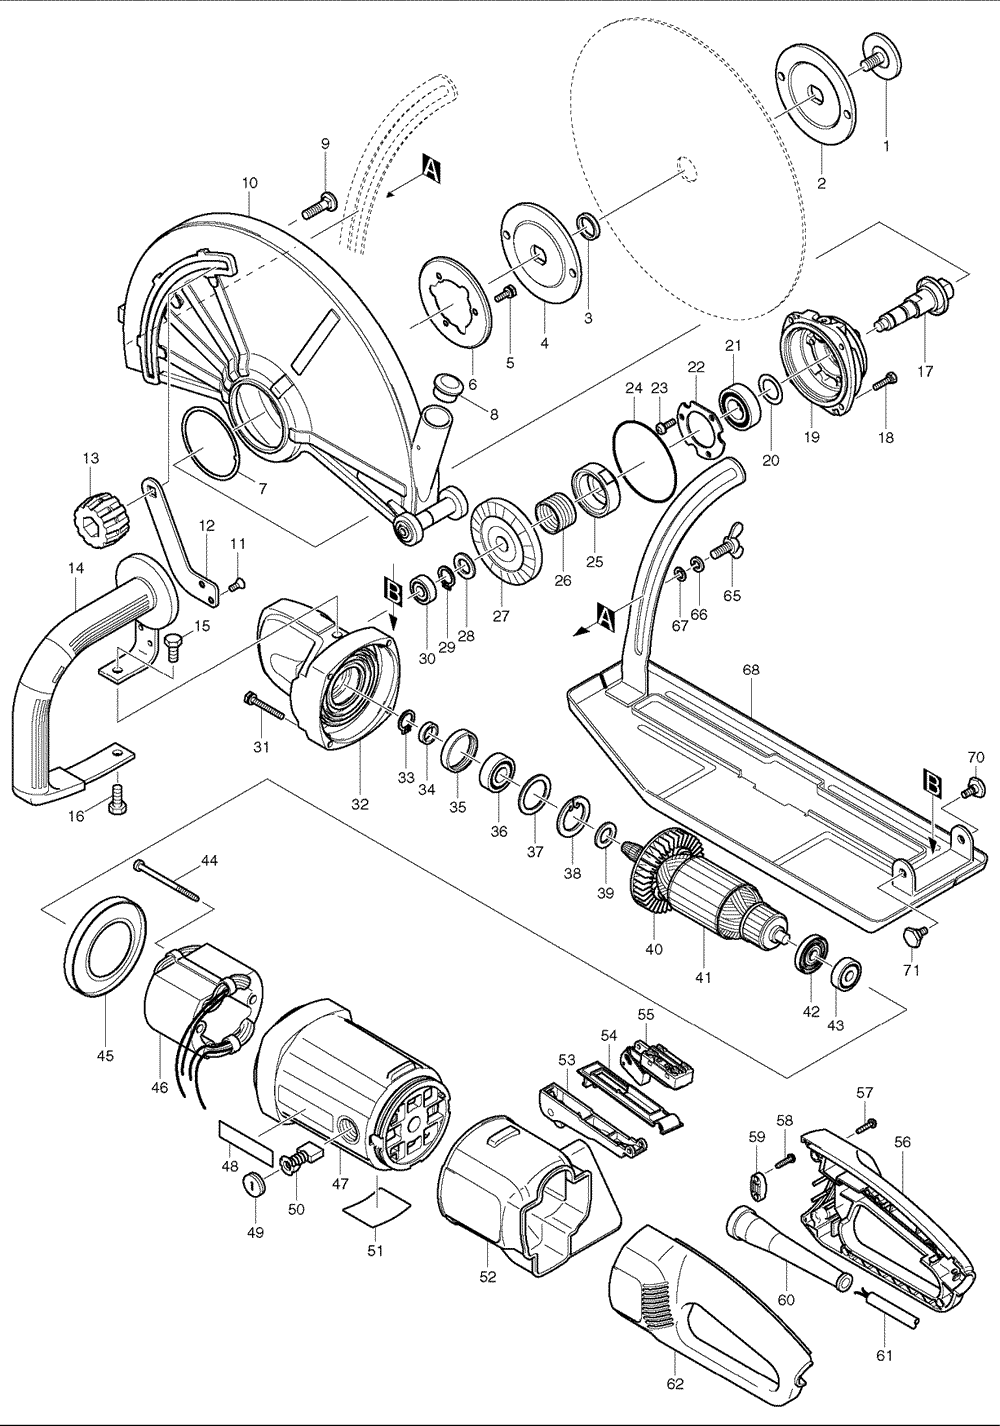 Makita Jr3000v Wiring Diagram Auto Electrical Switch